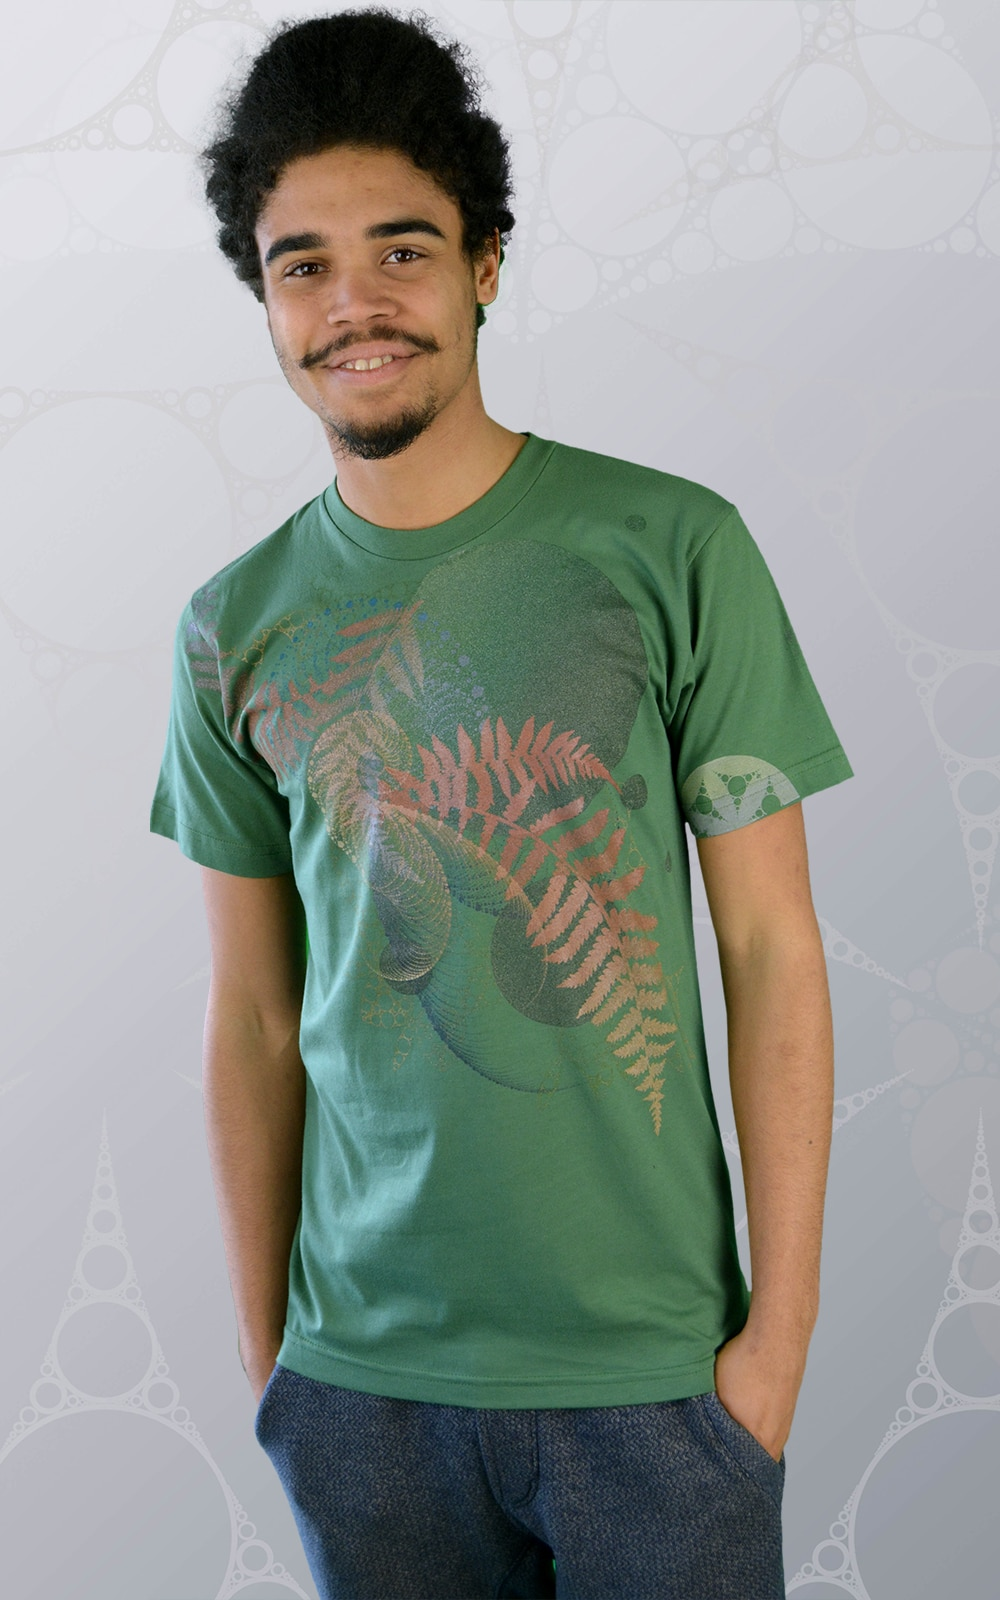 Organic Cotton T Shirt Green 39 Music Of The Spheres